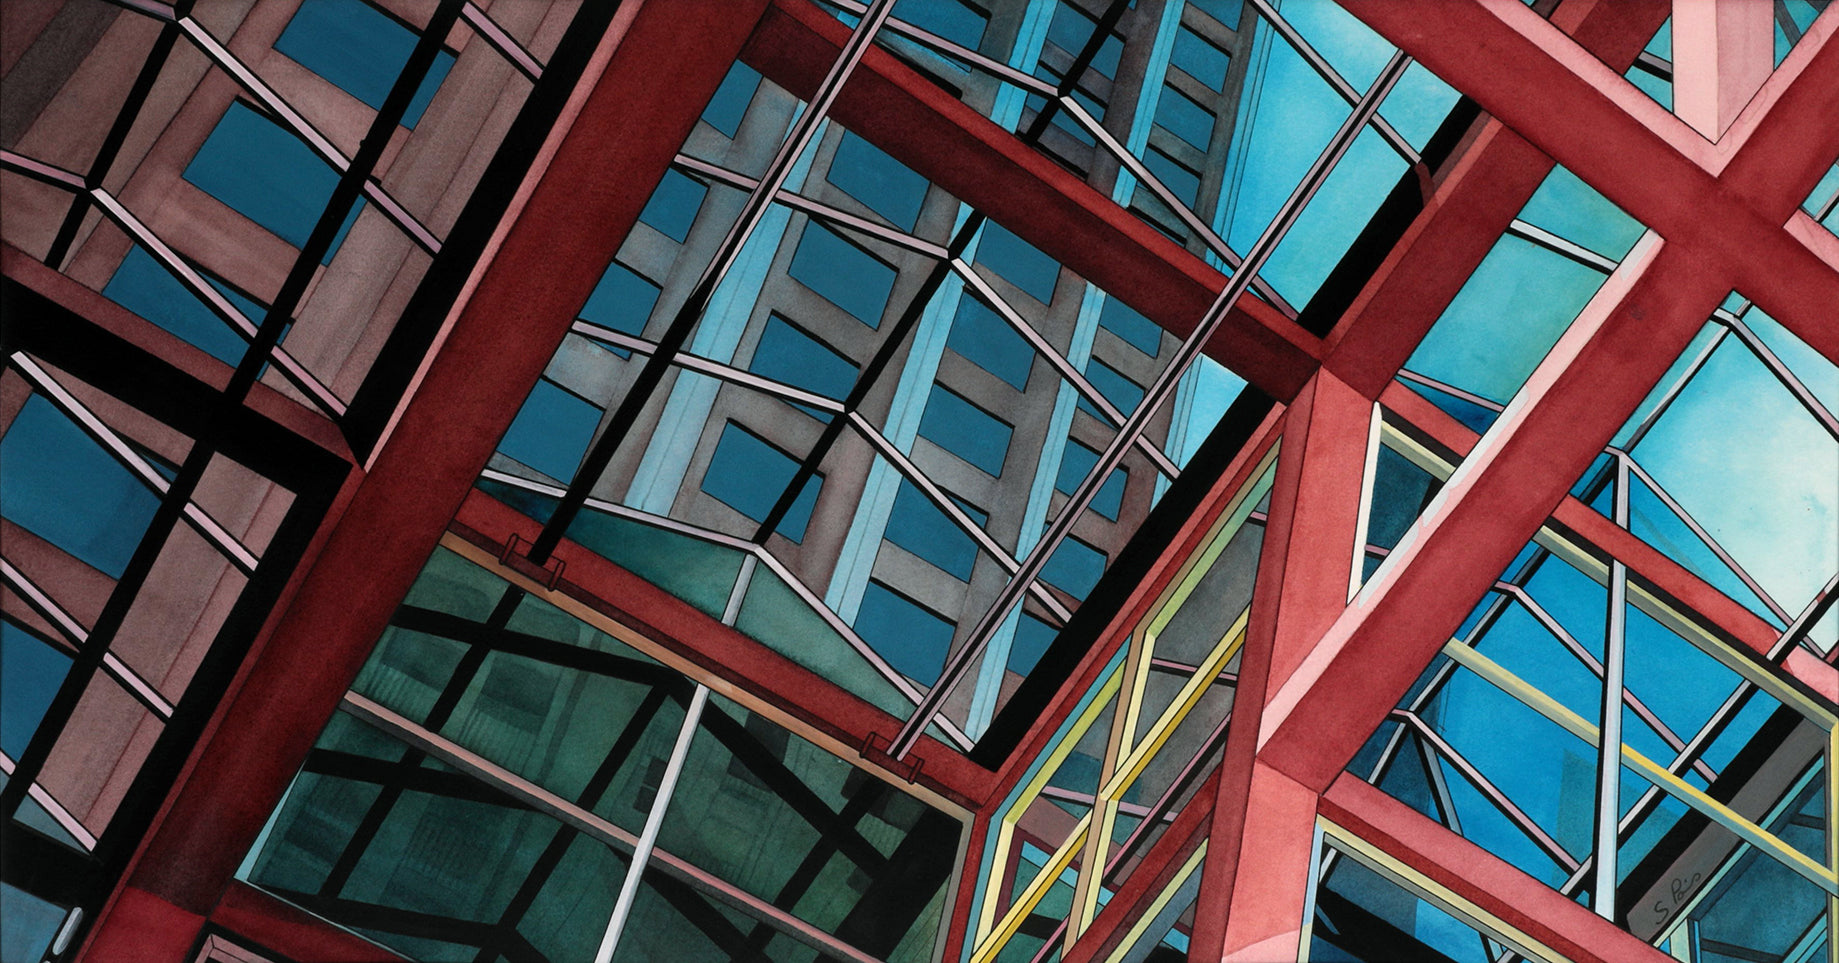 Painting of the ScotiaPlaza building on King West in Toronto